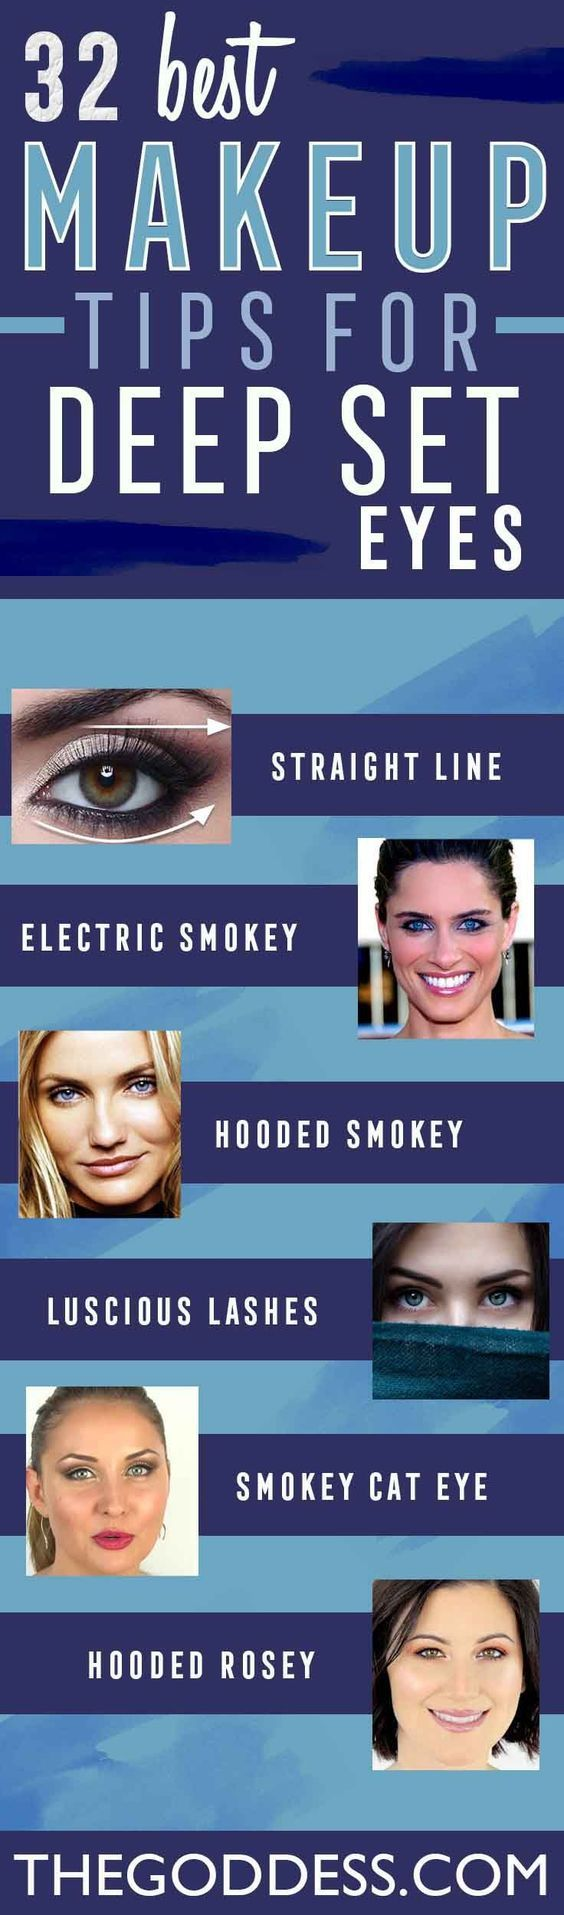 32 Best Makeup Tips for Deep Set Eyes - Easy tutorials on how to apply make up for deep set eyes - Great natural looks for the wedding, dark looks with eyeshadows and products like Urban Decay - Great cut crease looks for different brows and different hair colors - thegoddess.com/makeup-tips-deep-set-eyes